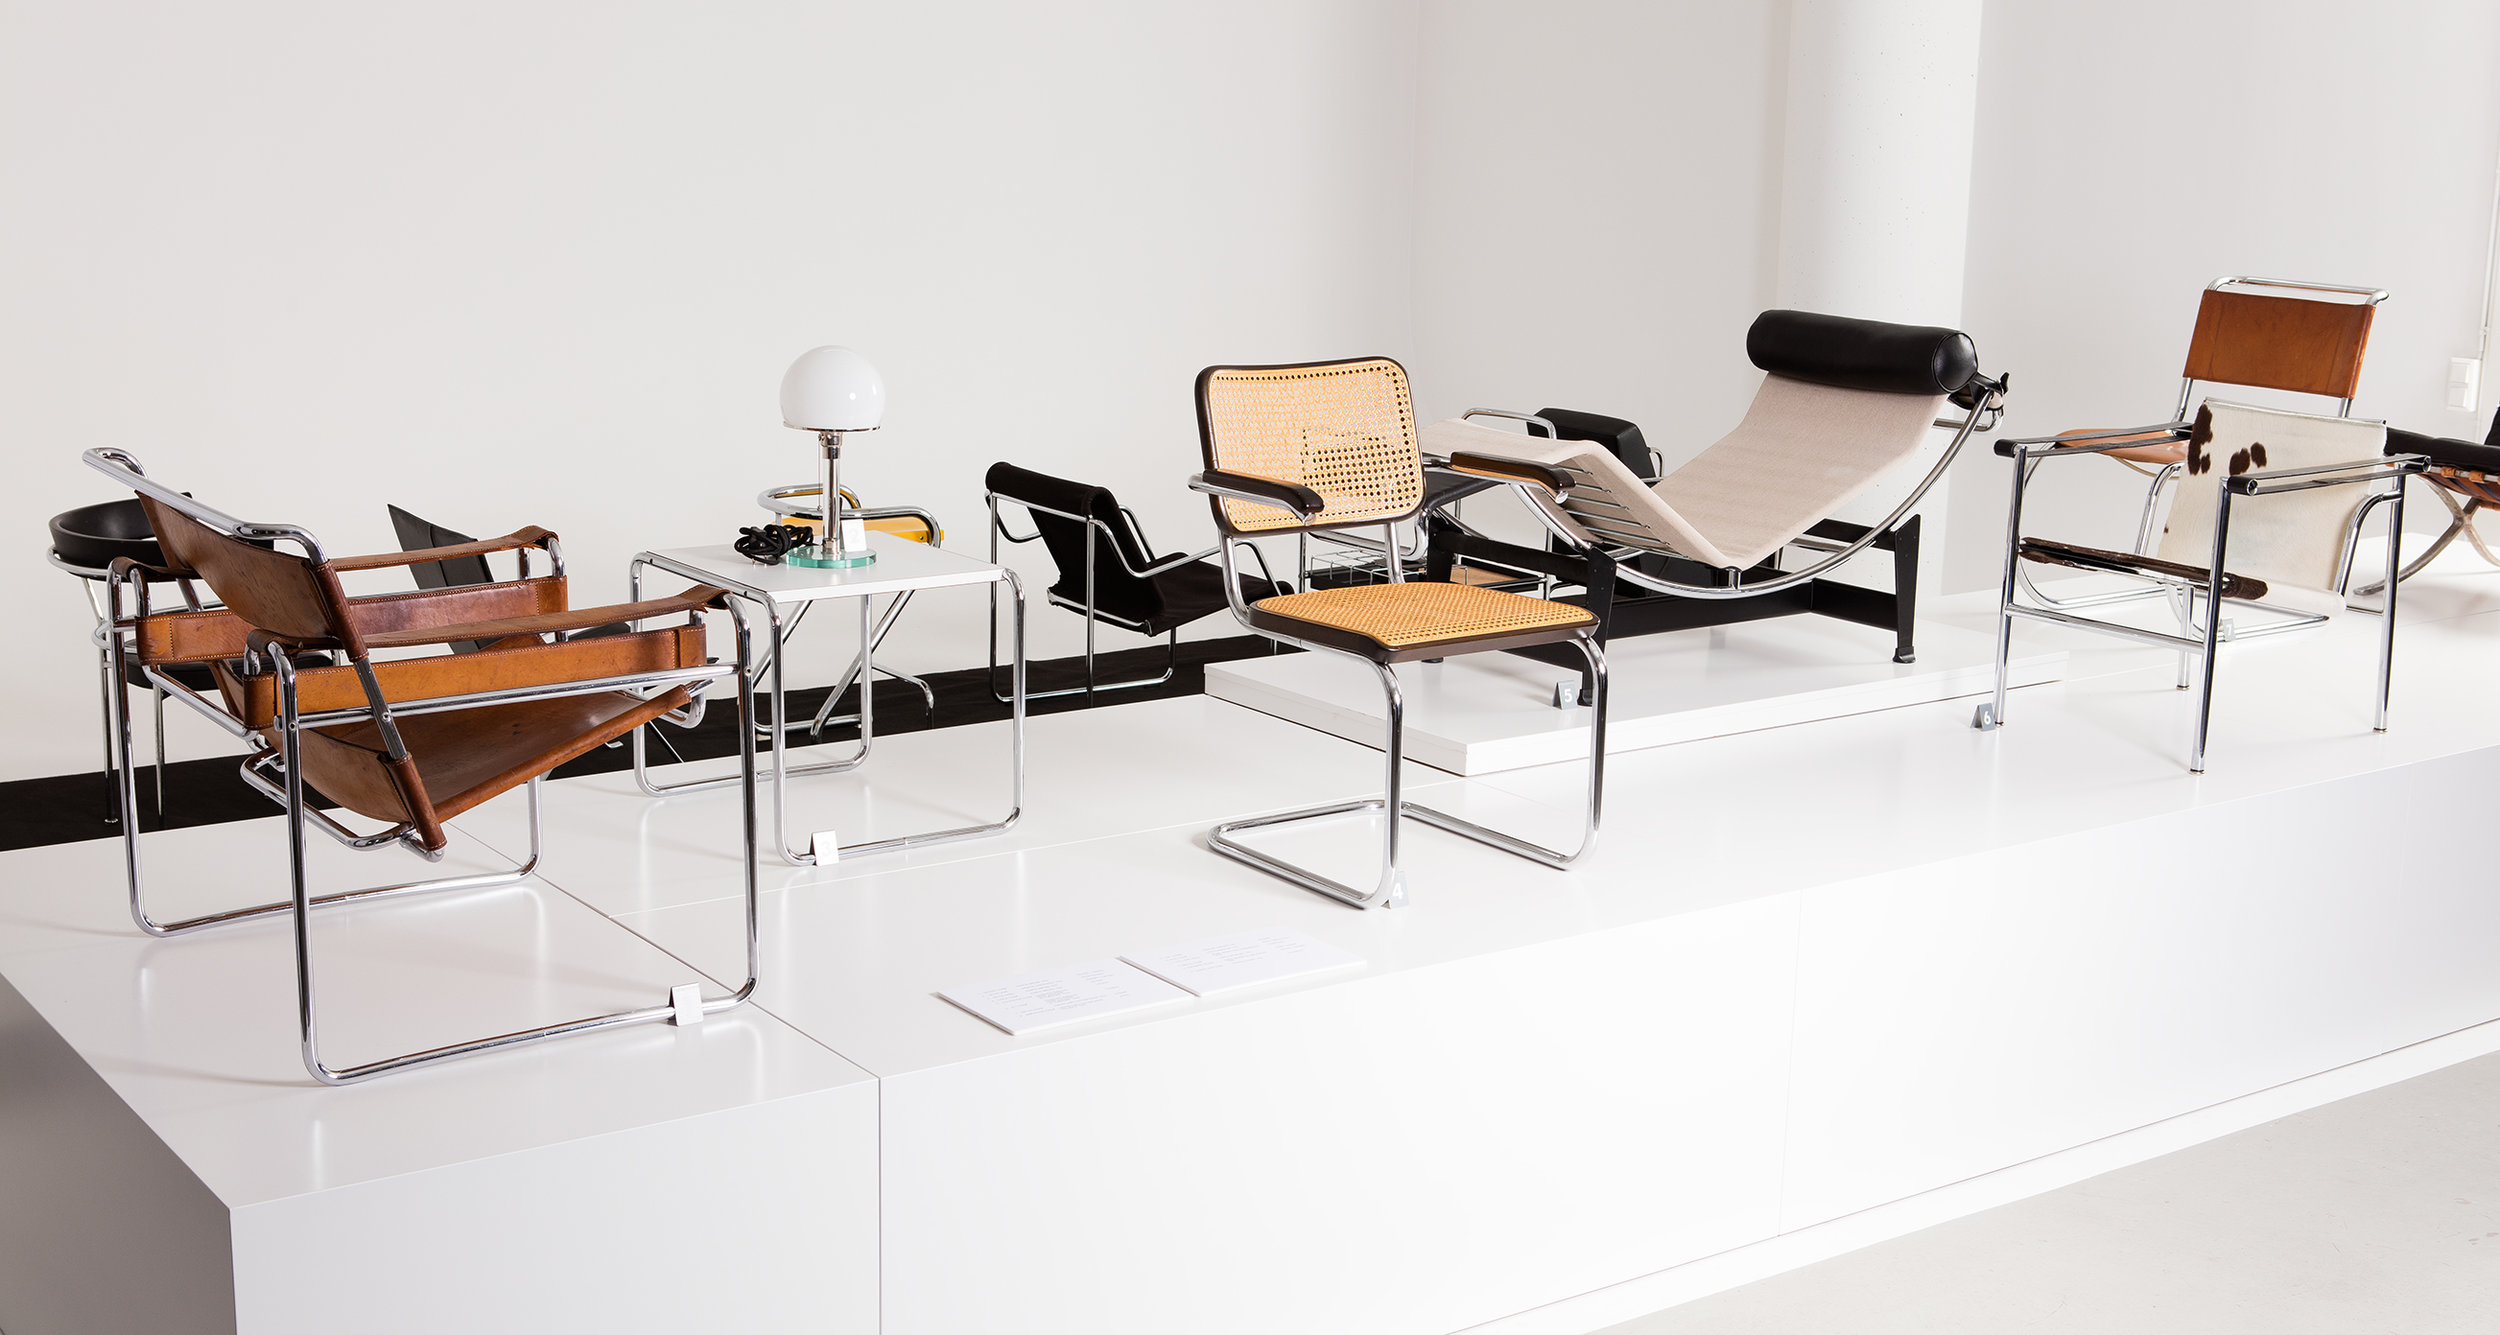 IMAGE FROM THE EXHIBITION BAUHAUS AT THE MUSEUM OF FURNITURE STUDIES